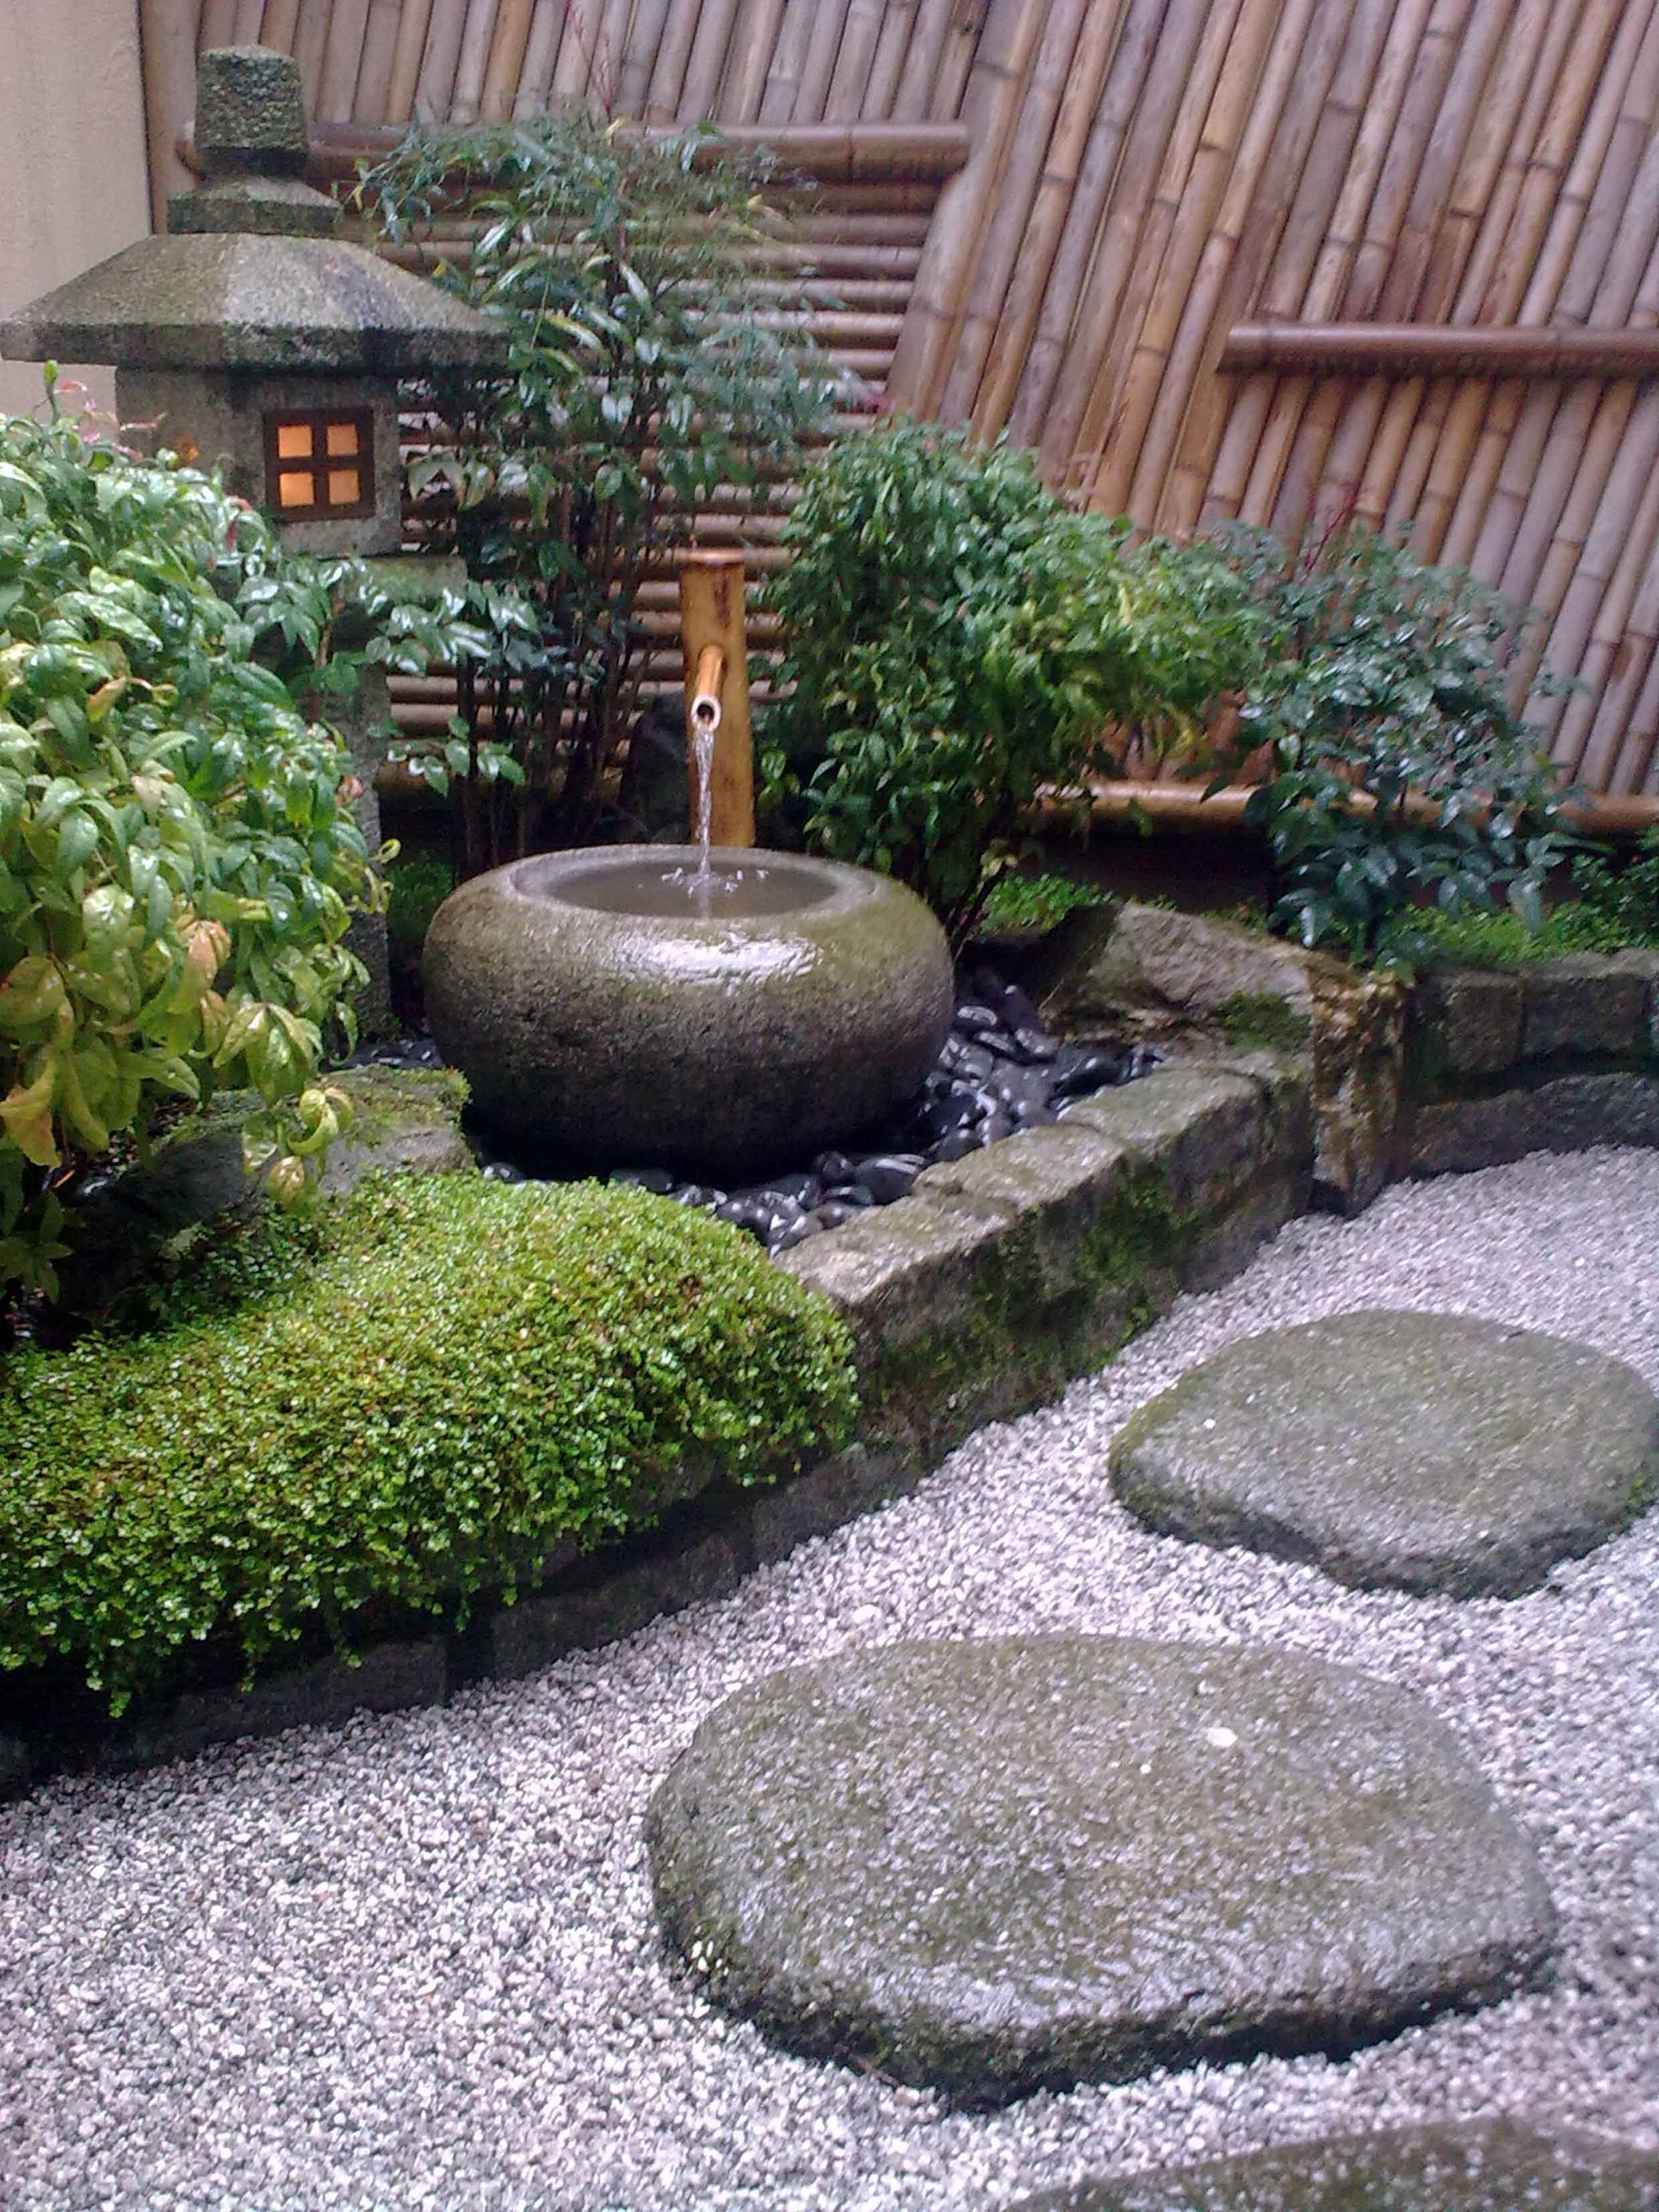 5a2fe5a00c457917645255aa3c372375 - Landscapes For Small Spaces Japanese Courtyard Gardens